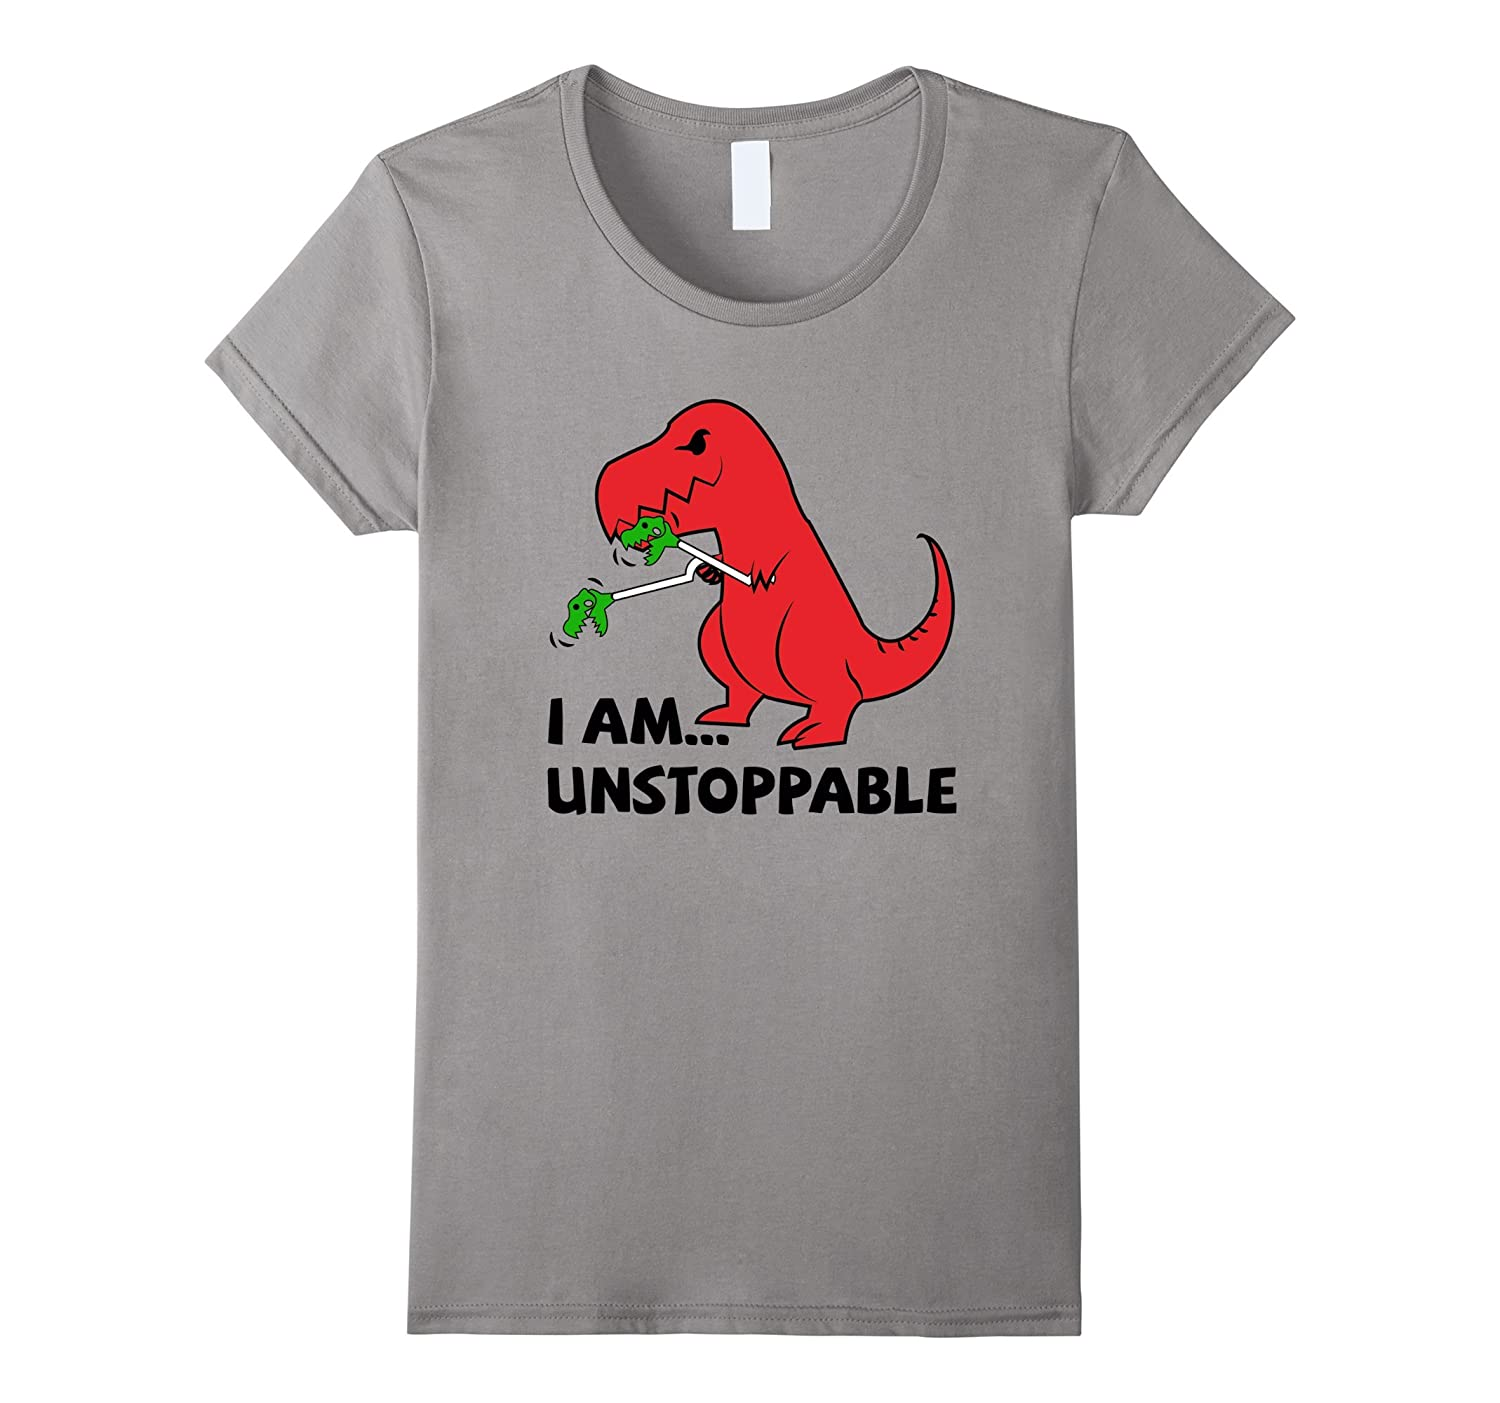 Funny Work Out, Cross Train, Fitness Shirt Unstoppable T-Rex